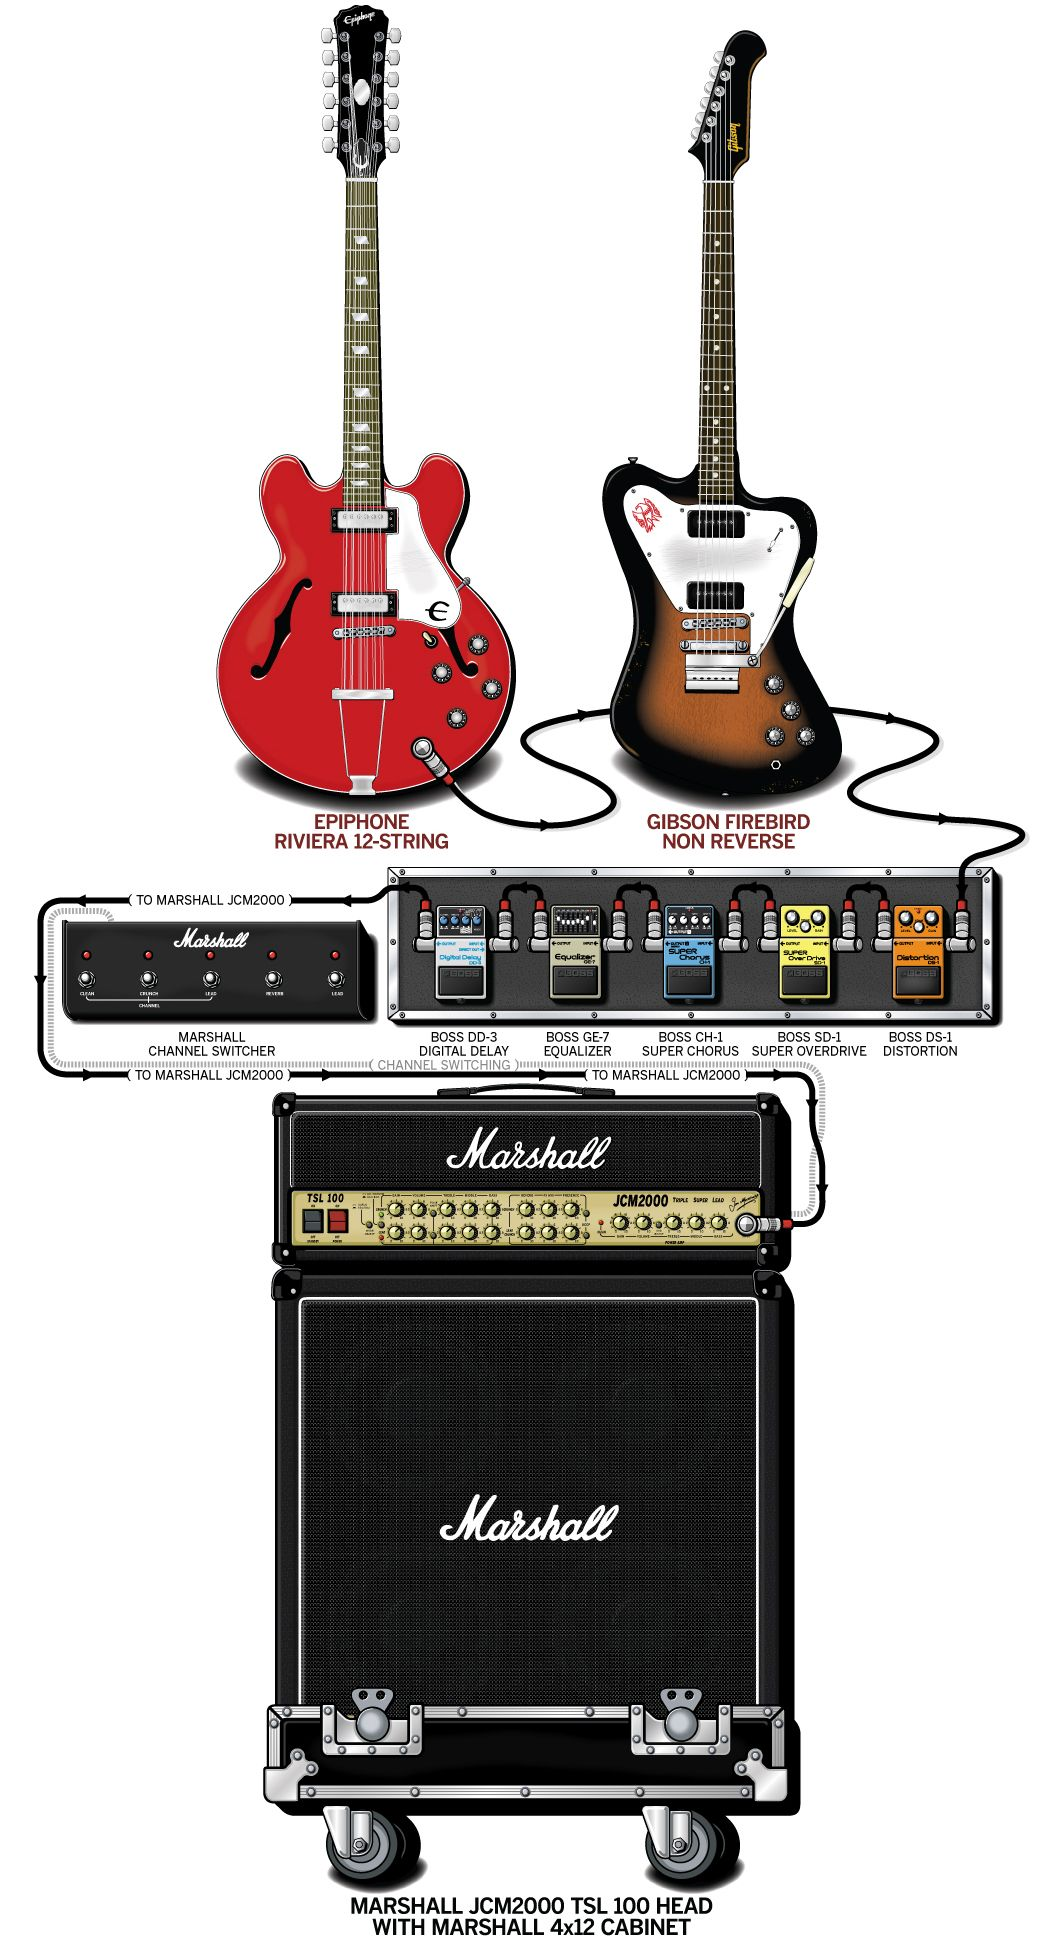 Miki Berenyi Lush 1994 With Images Guitar Rig Guitar Effects Pedals Pedalboard